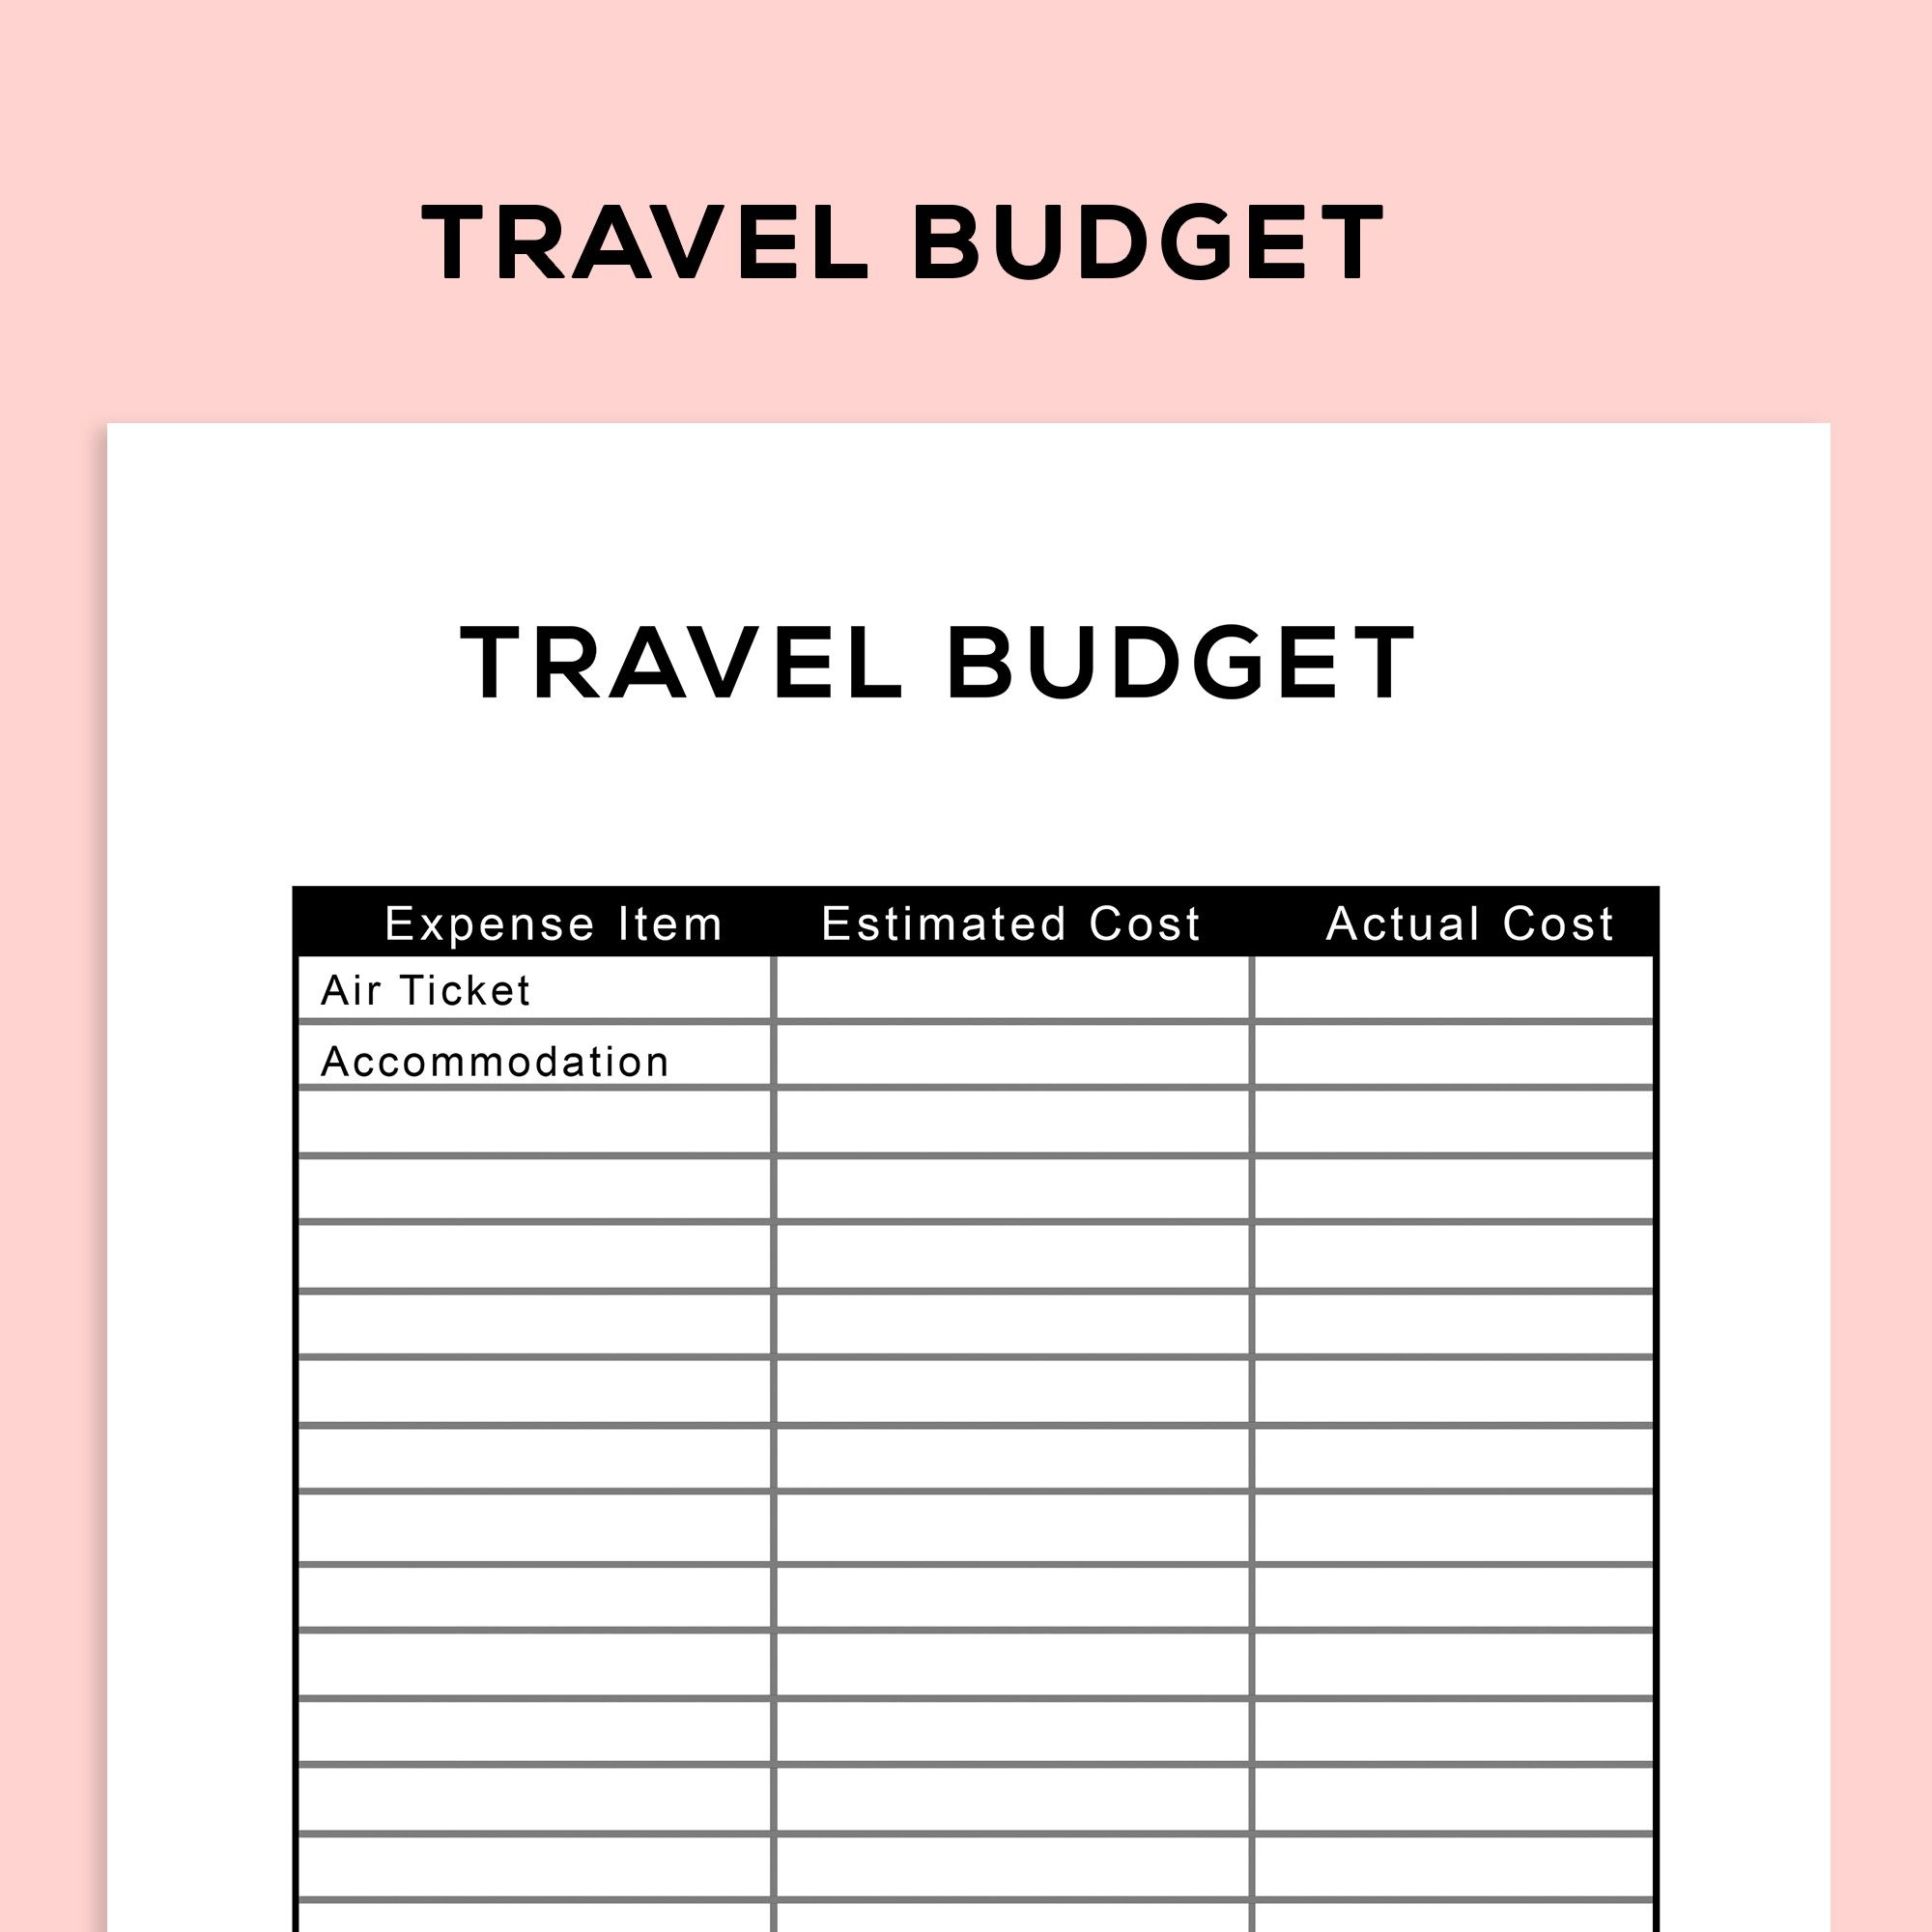 Use This Travel Budget Planner To Work Out The Budget For Your